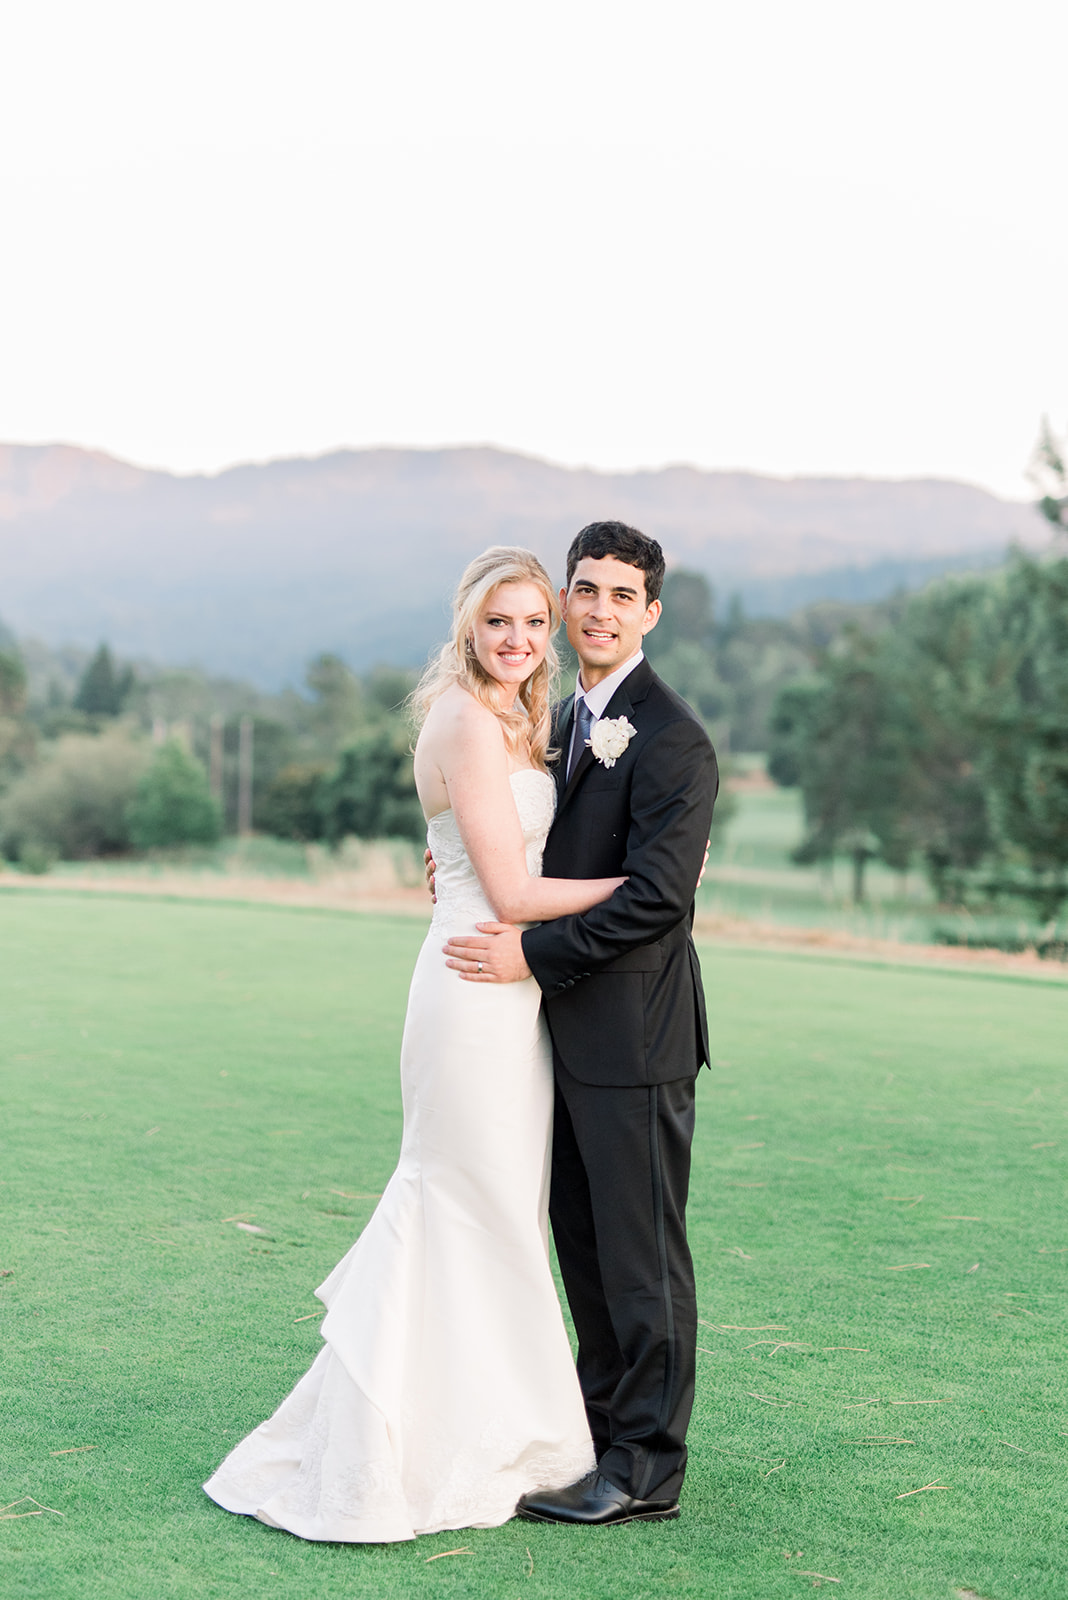 Katie and Daniel_Sneak Peek-9.jpg